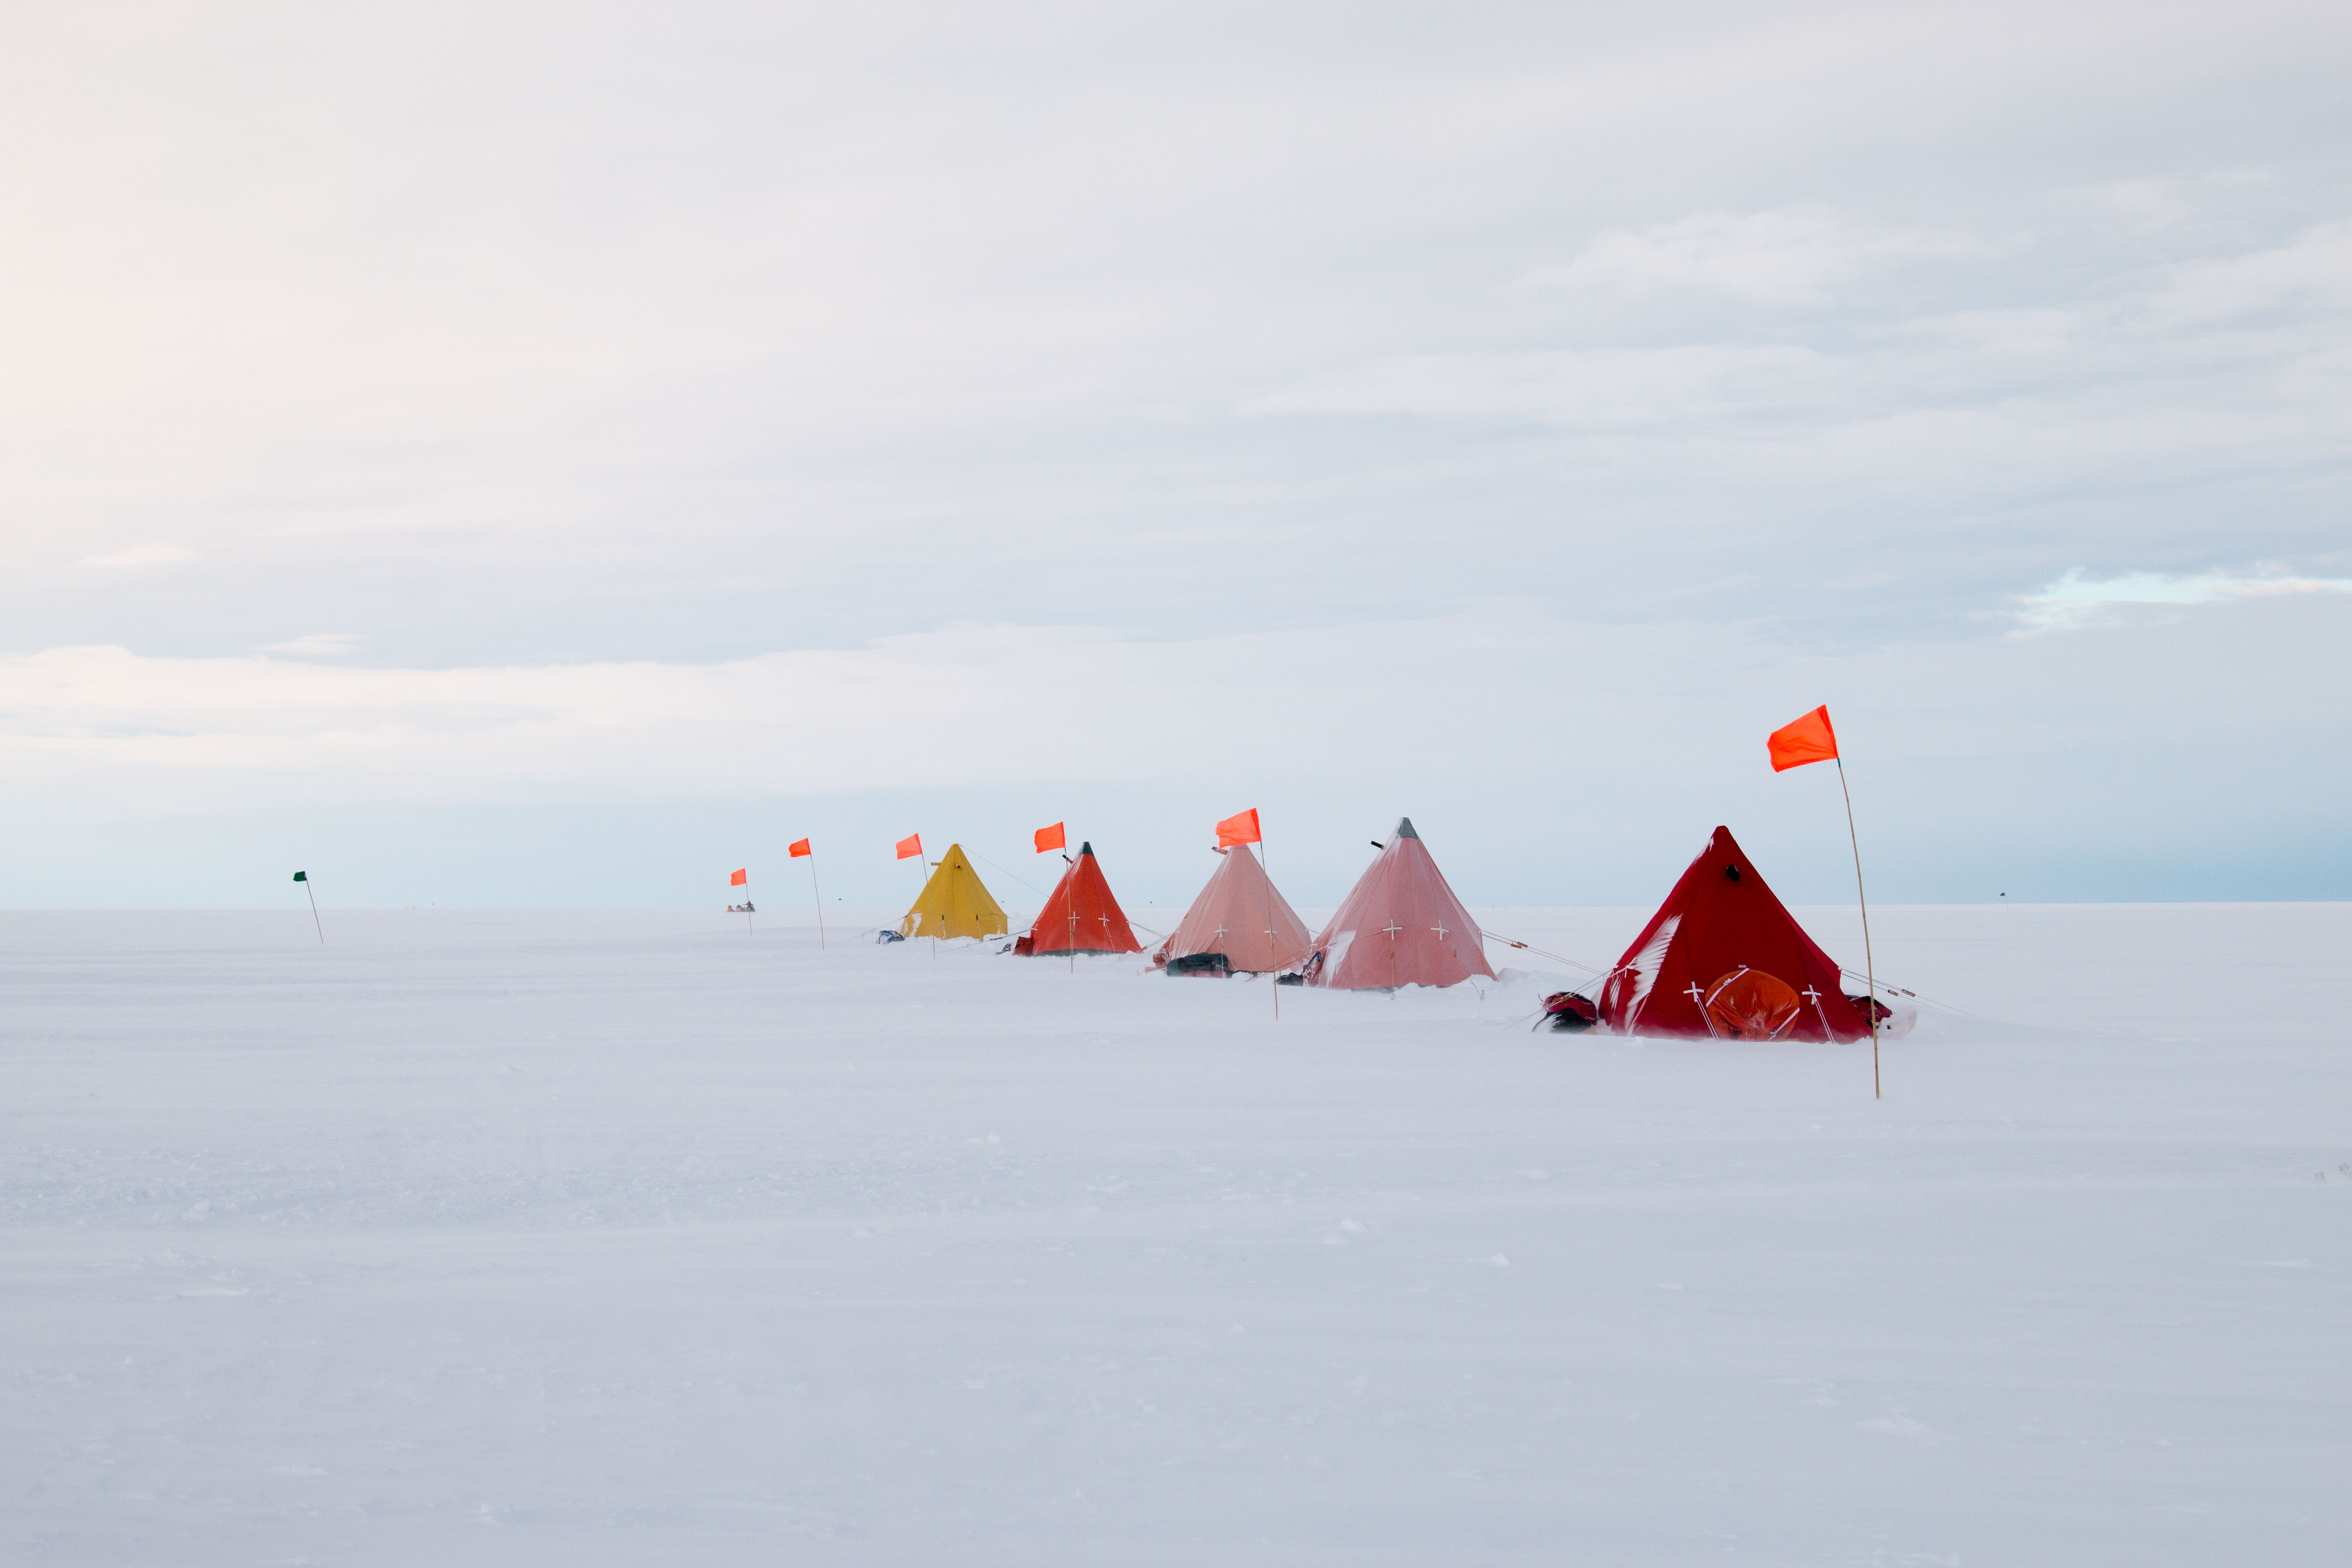 Credit: International Thwaites Glacier Collaboration / Georgia Tech-Schmidt / Dichek  The research team's camp on Thwaites Glacier hundreds of meters atop the glacier's very critical grounding zone. The crew lived and researched here for two months out in the open in Antarctica.